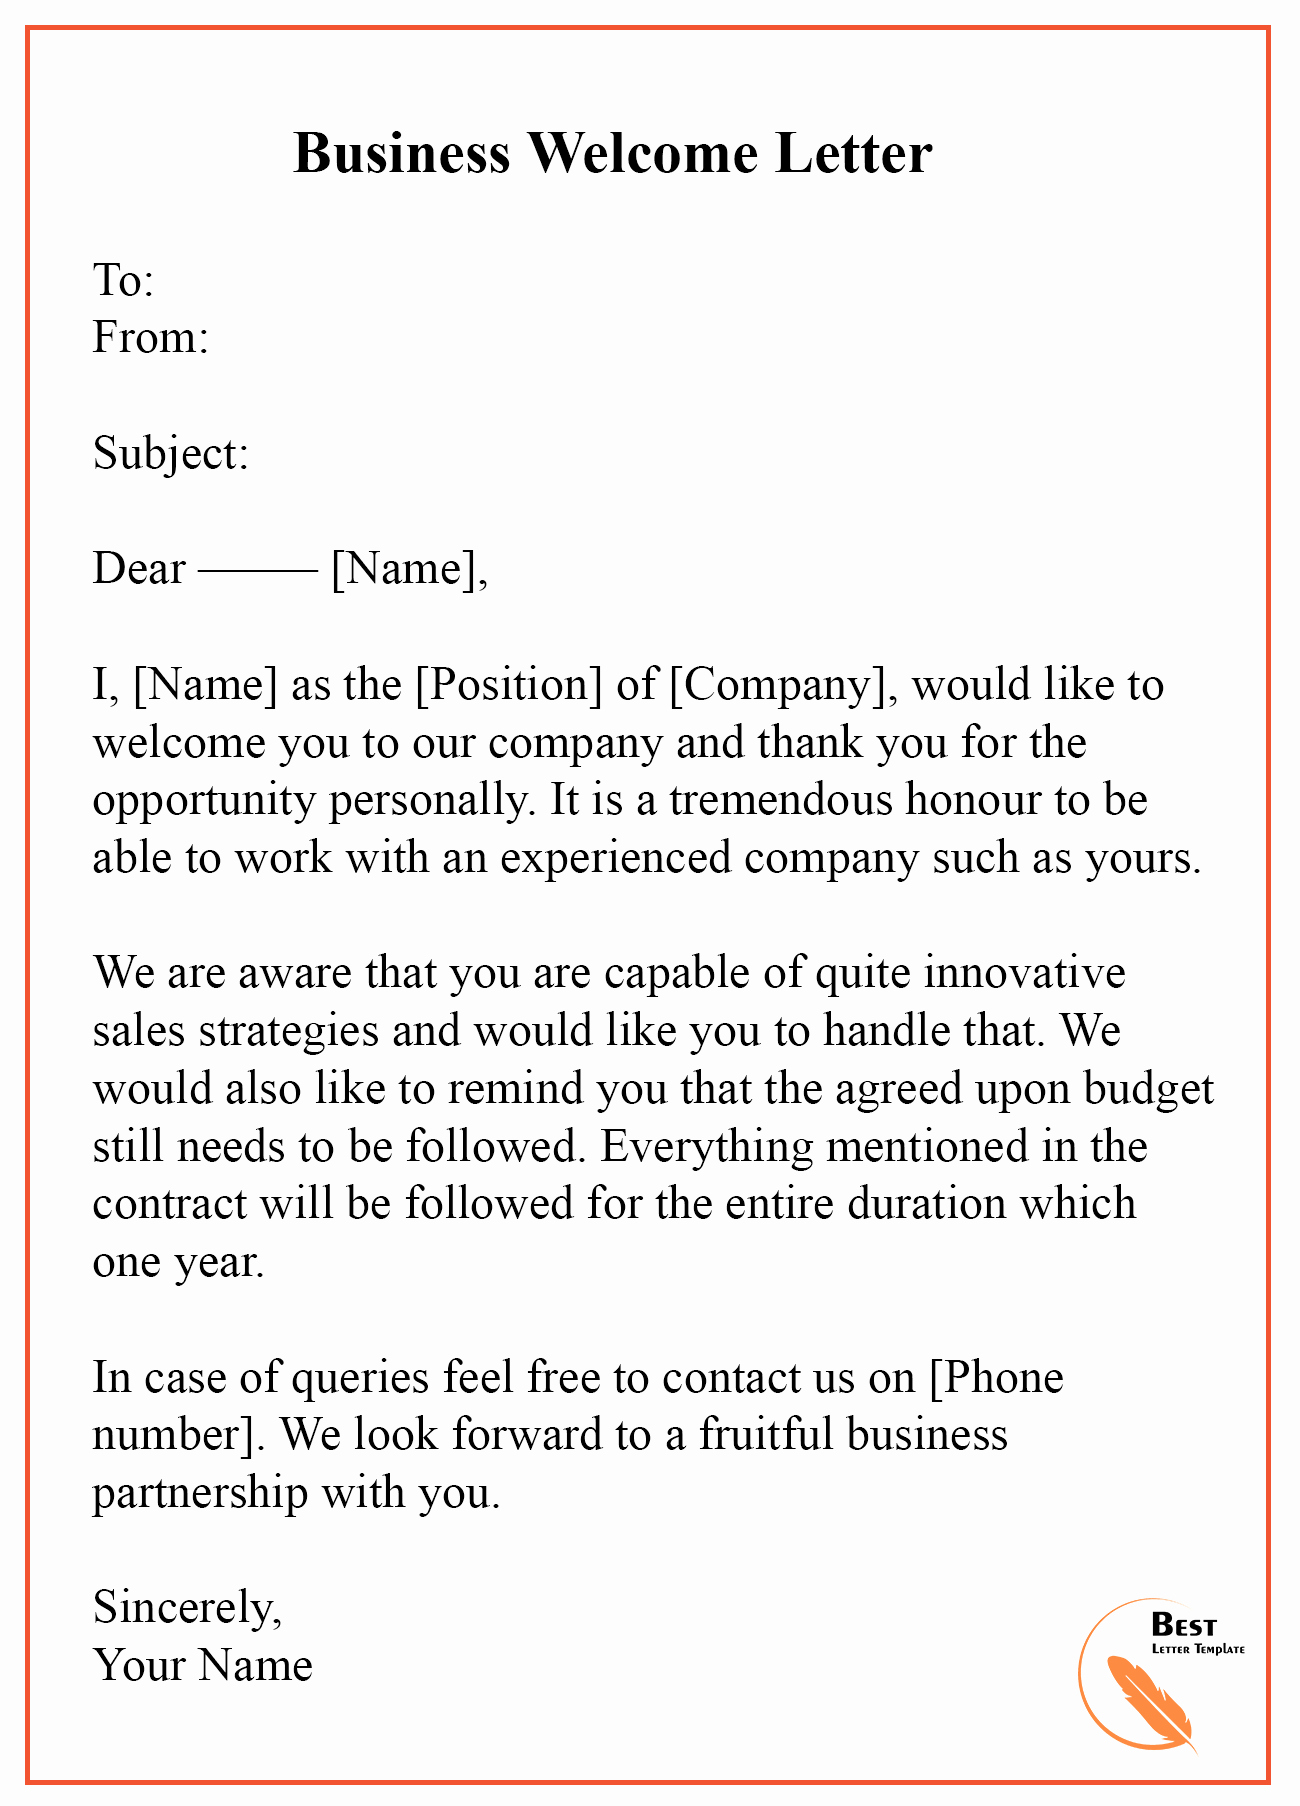 Examples Of Welcome Letters Lovely Wel E Letter Template – format Sample & Example